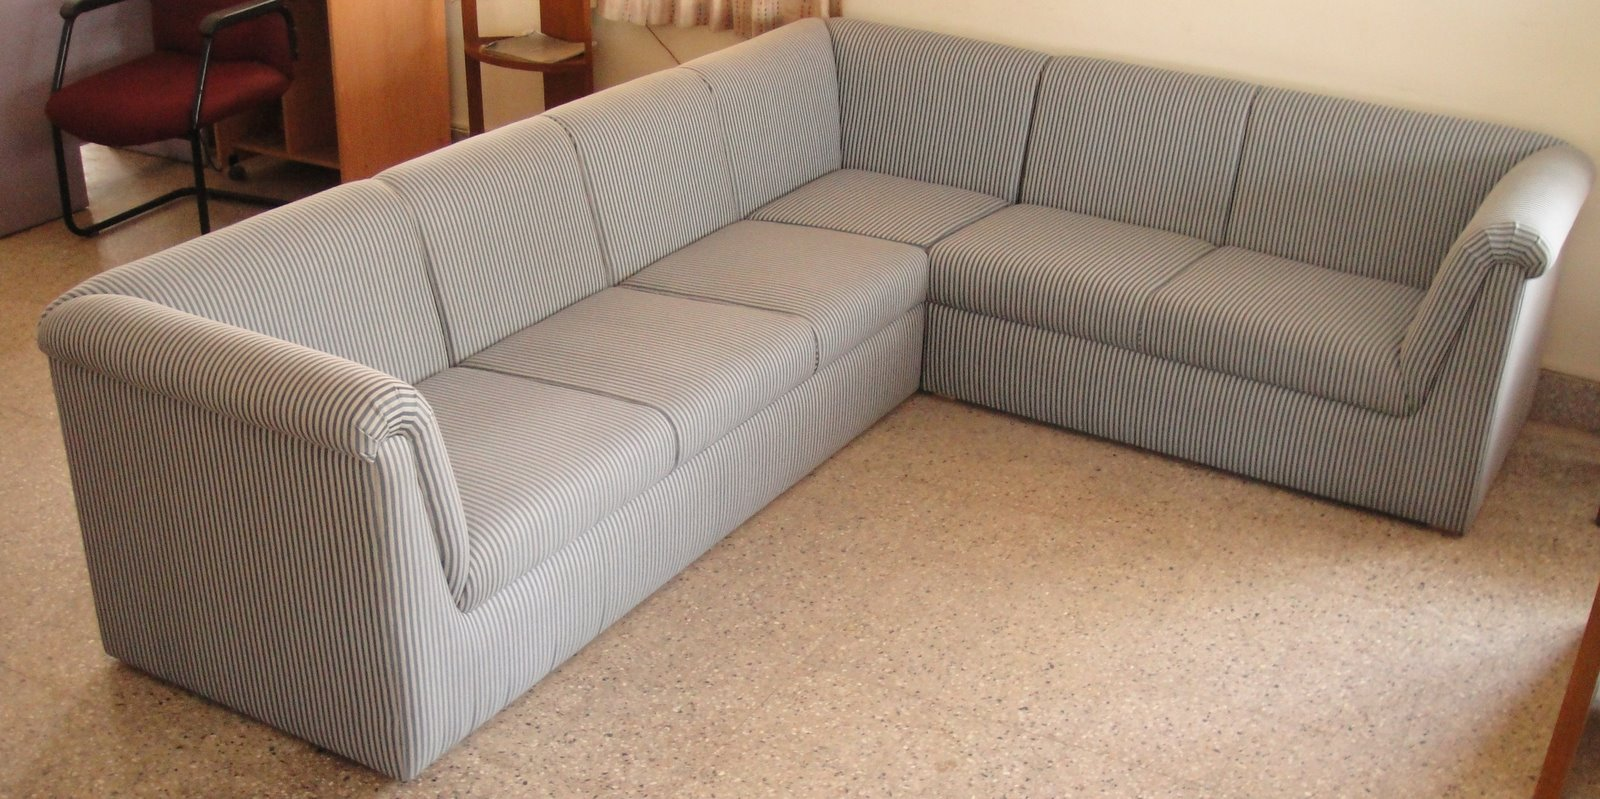 Sofa set deals in bangalore design for Sofa set offers